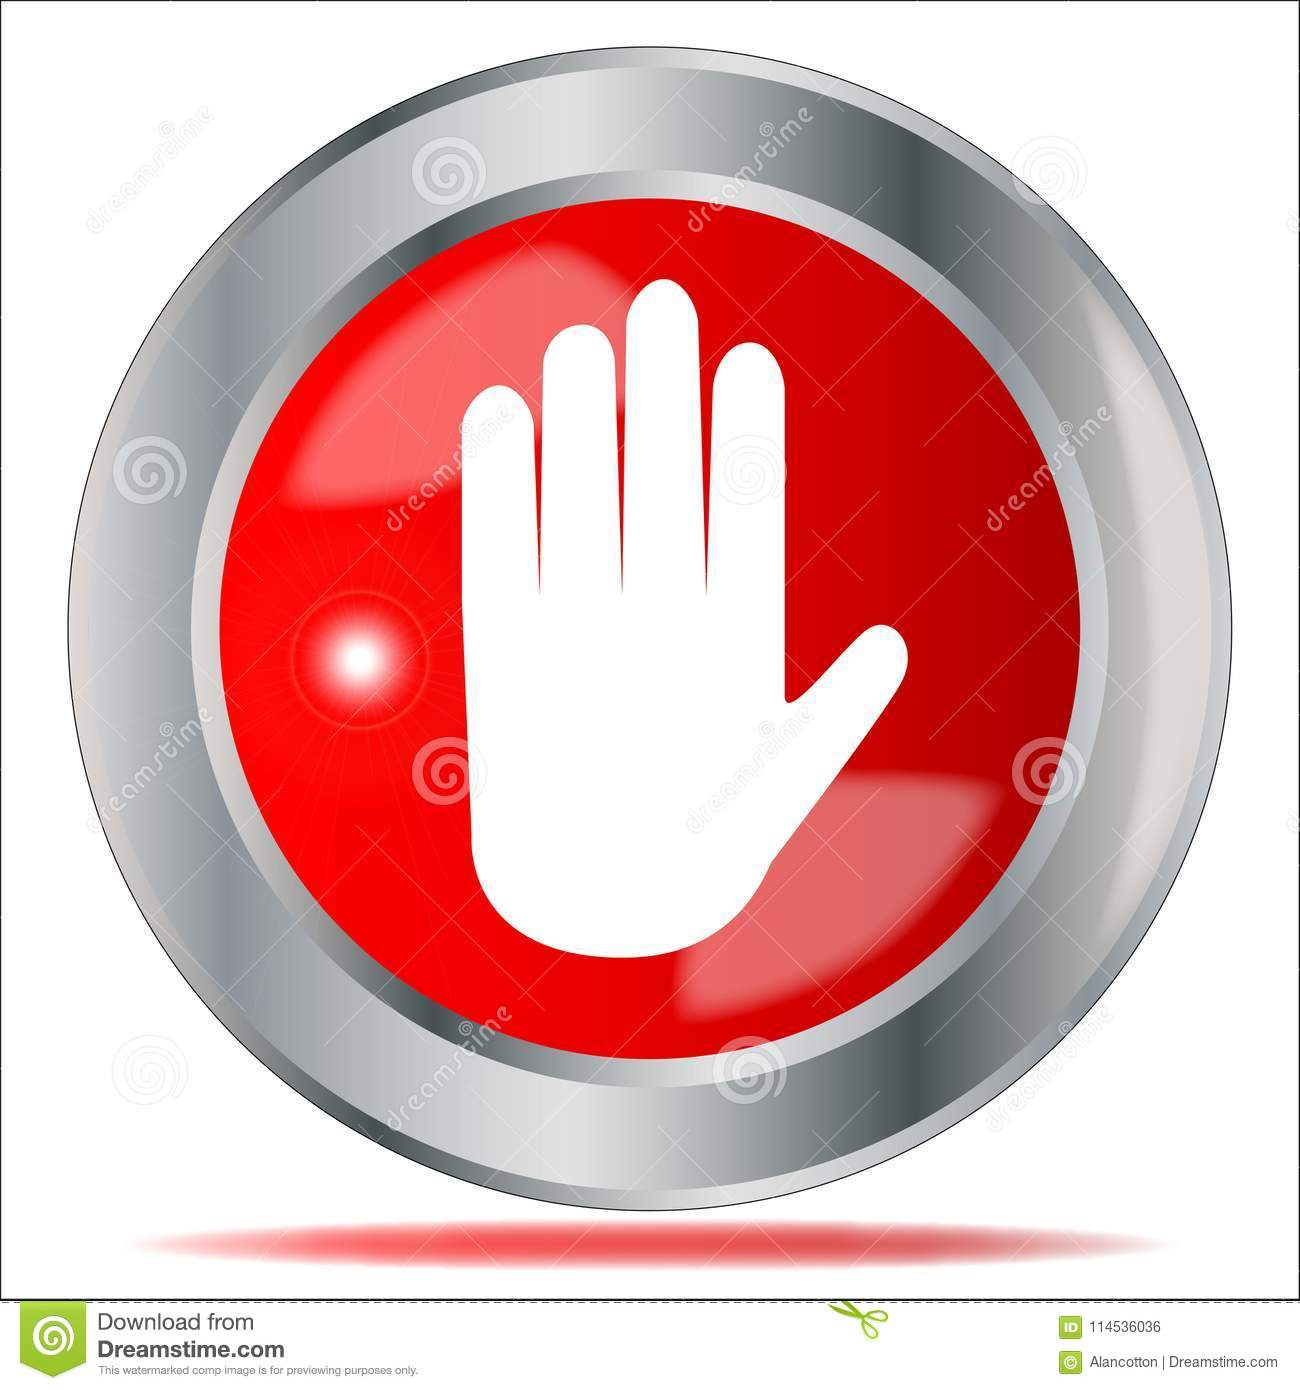 Stop Hand Button Isolated Stock Vector Illustration Of Artwork